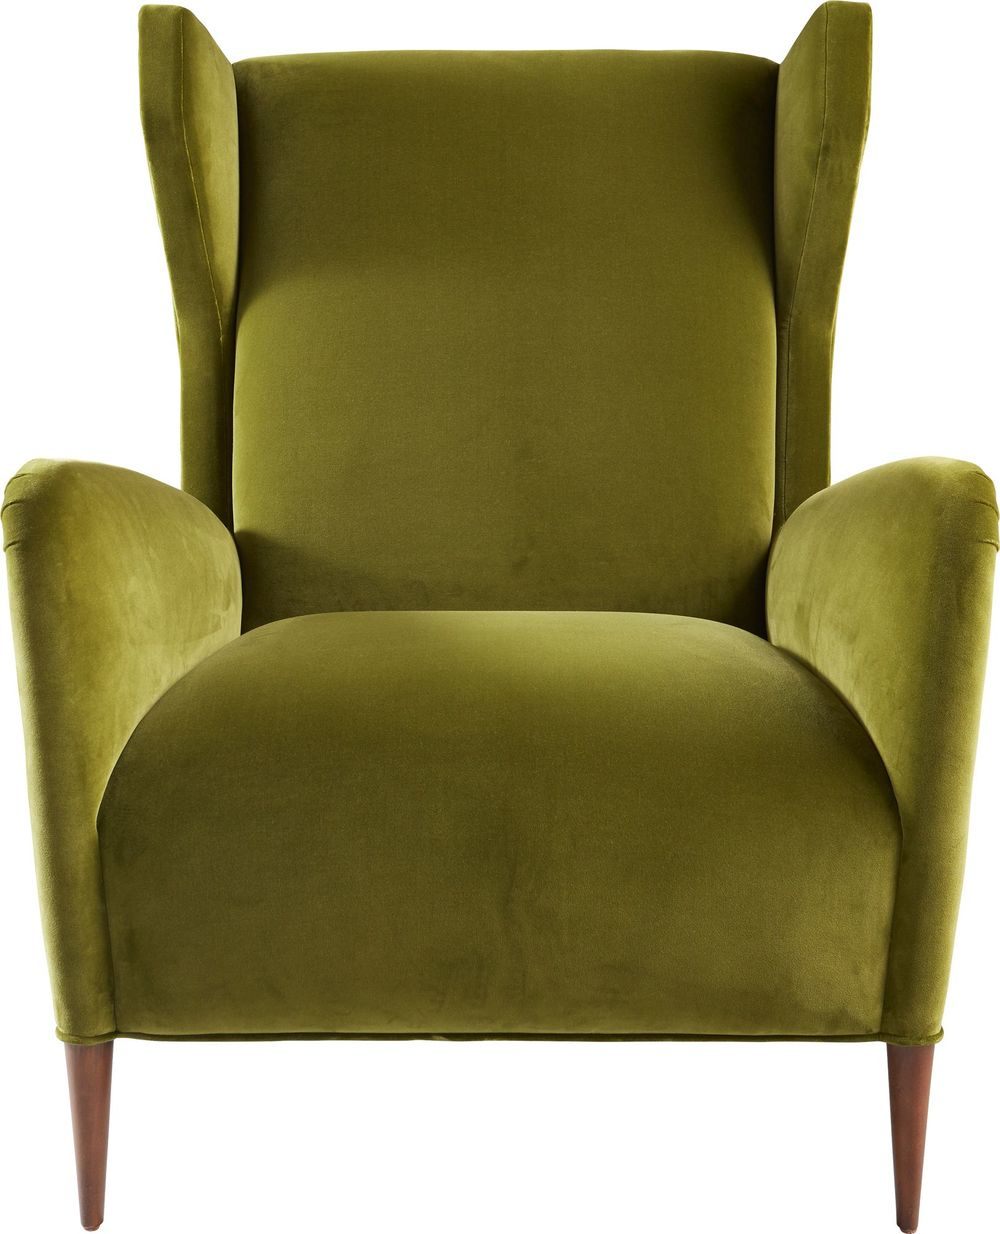 Baker Furniture - Icarus Chair